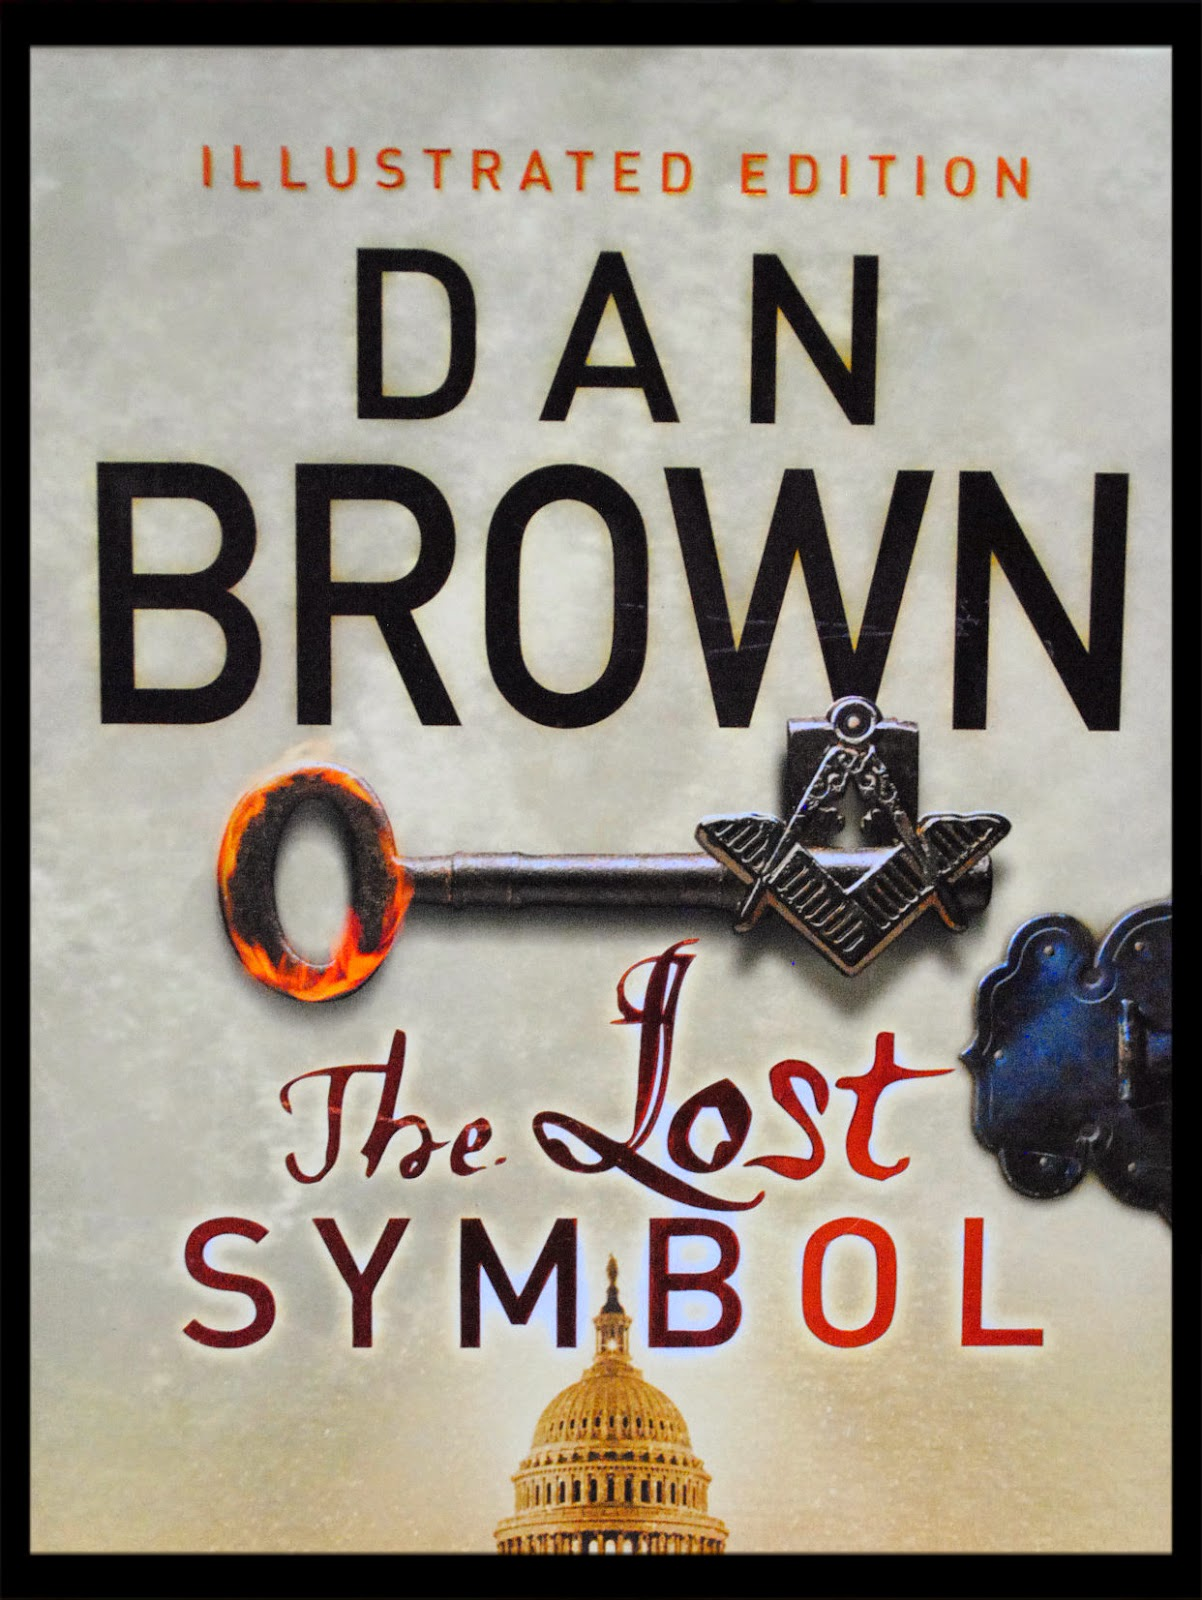 Musings of the book a holic fairies inc book haul 2 post dan browns works includes inferno and the lost symbol illustrated edition im a really big fan of his works after reading the the da vinci code and biocorpaavc